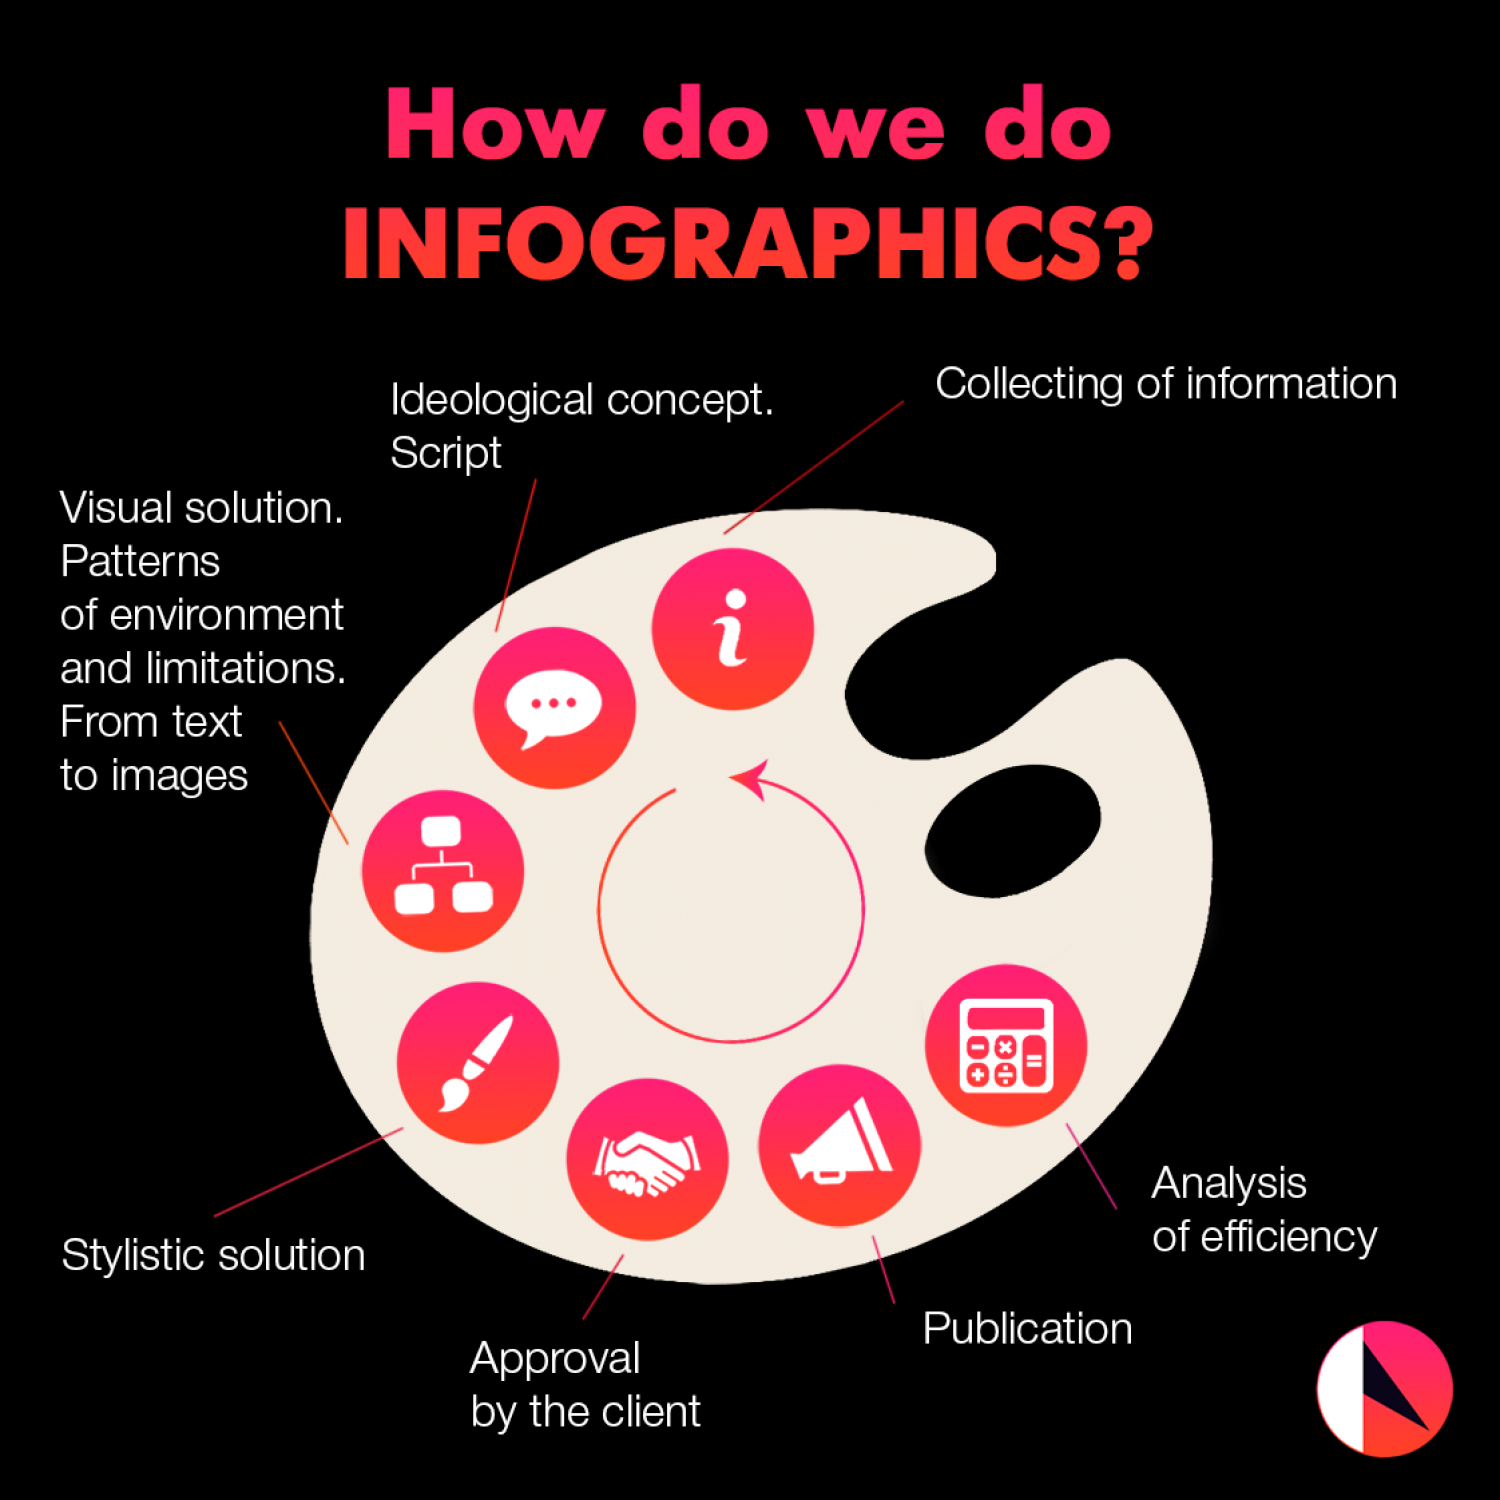 How Do We Do Infographics? Infographic